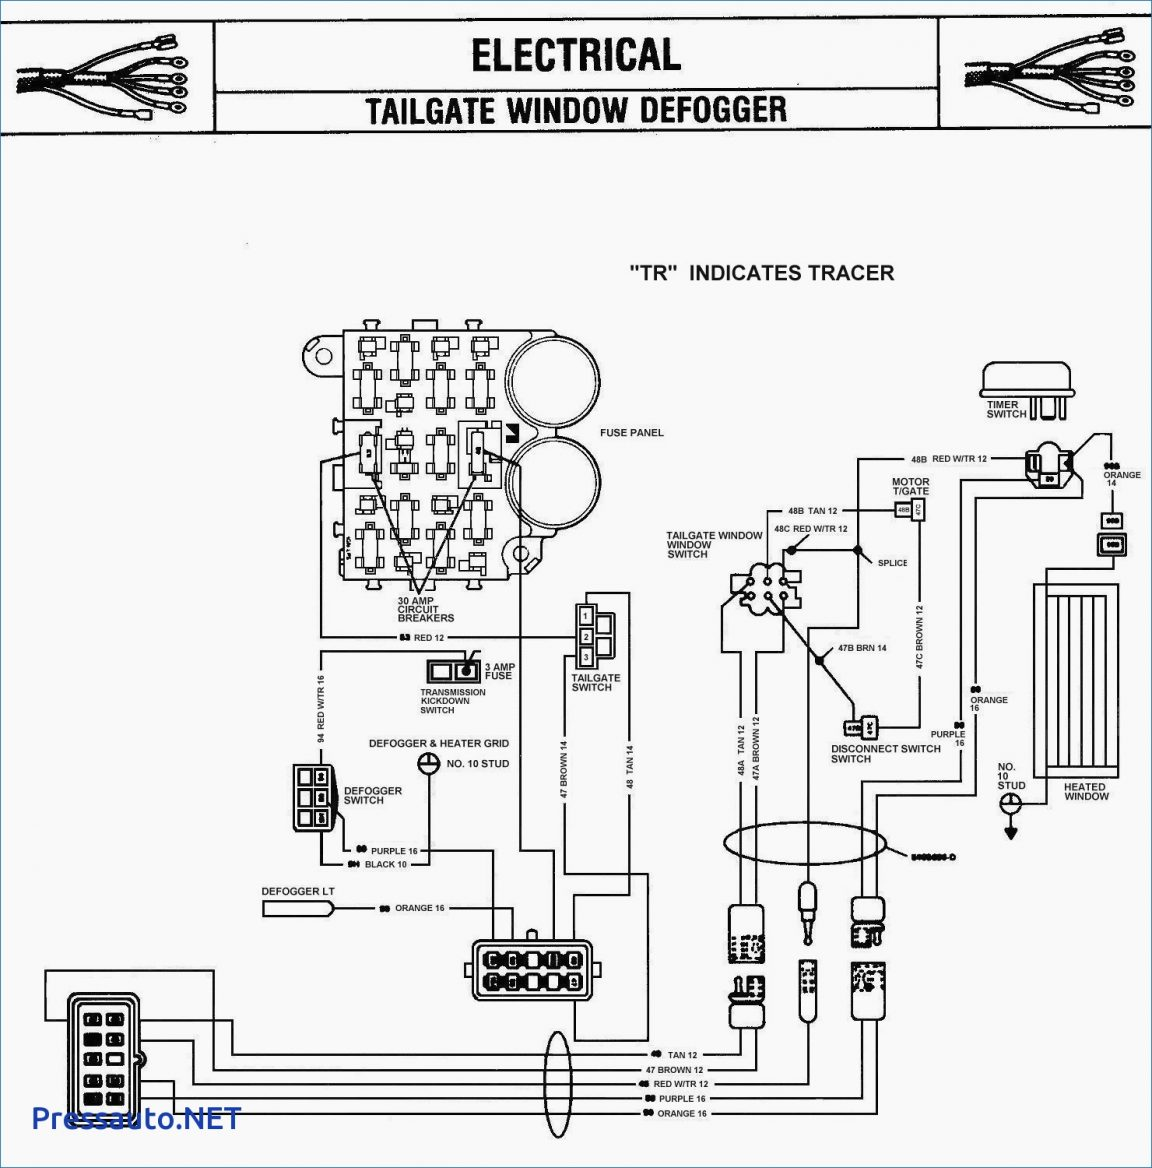 car aircon thermostat wiring diagram 2 gang switch lights fedder database ac drawing at getdrawings free for personal use of old honeywell